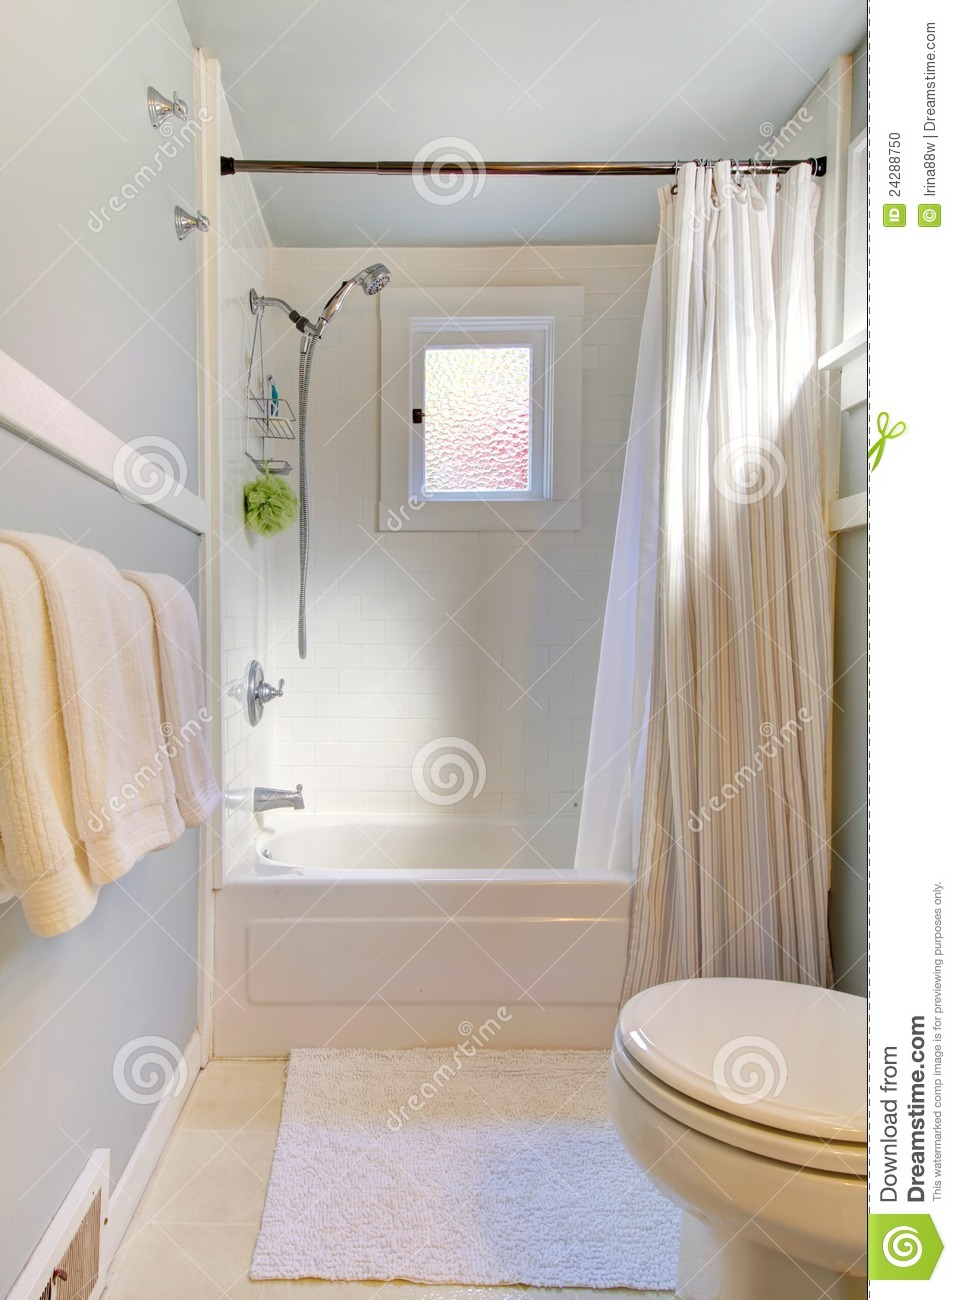 Cuartos De Baño Con Ducha Pequenos:Light Blue and Grey Bathroom